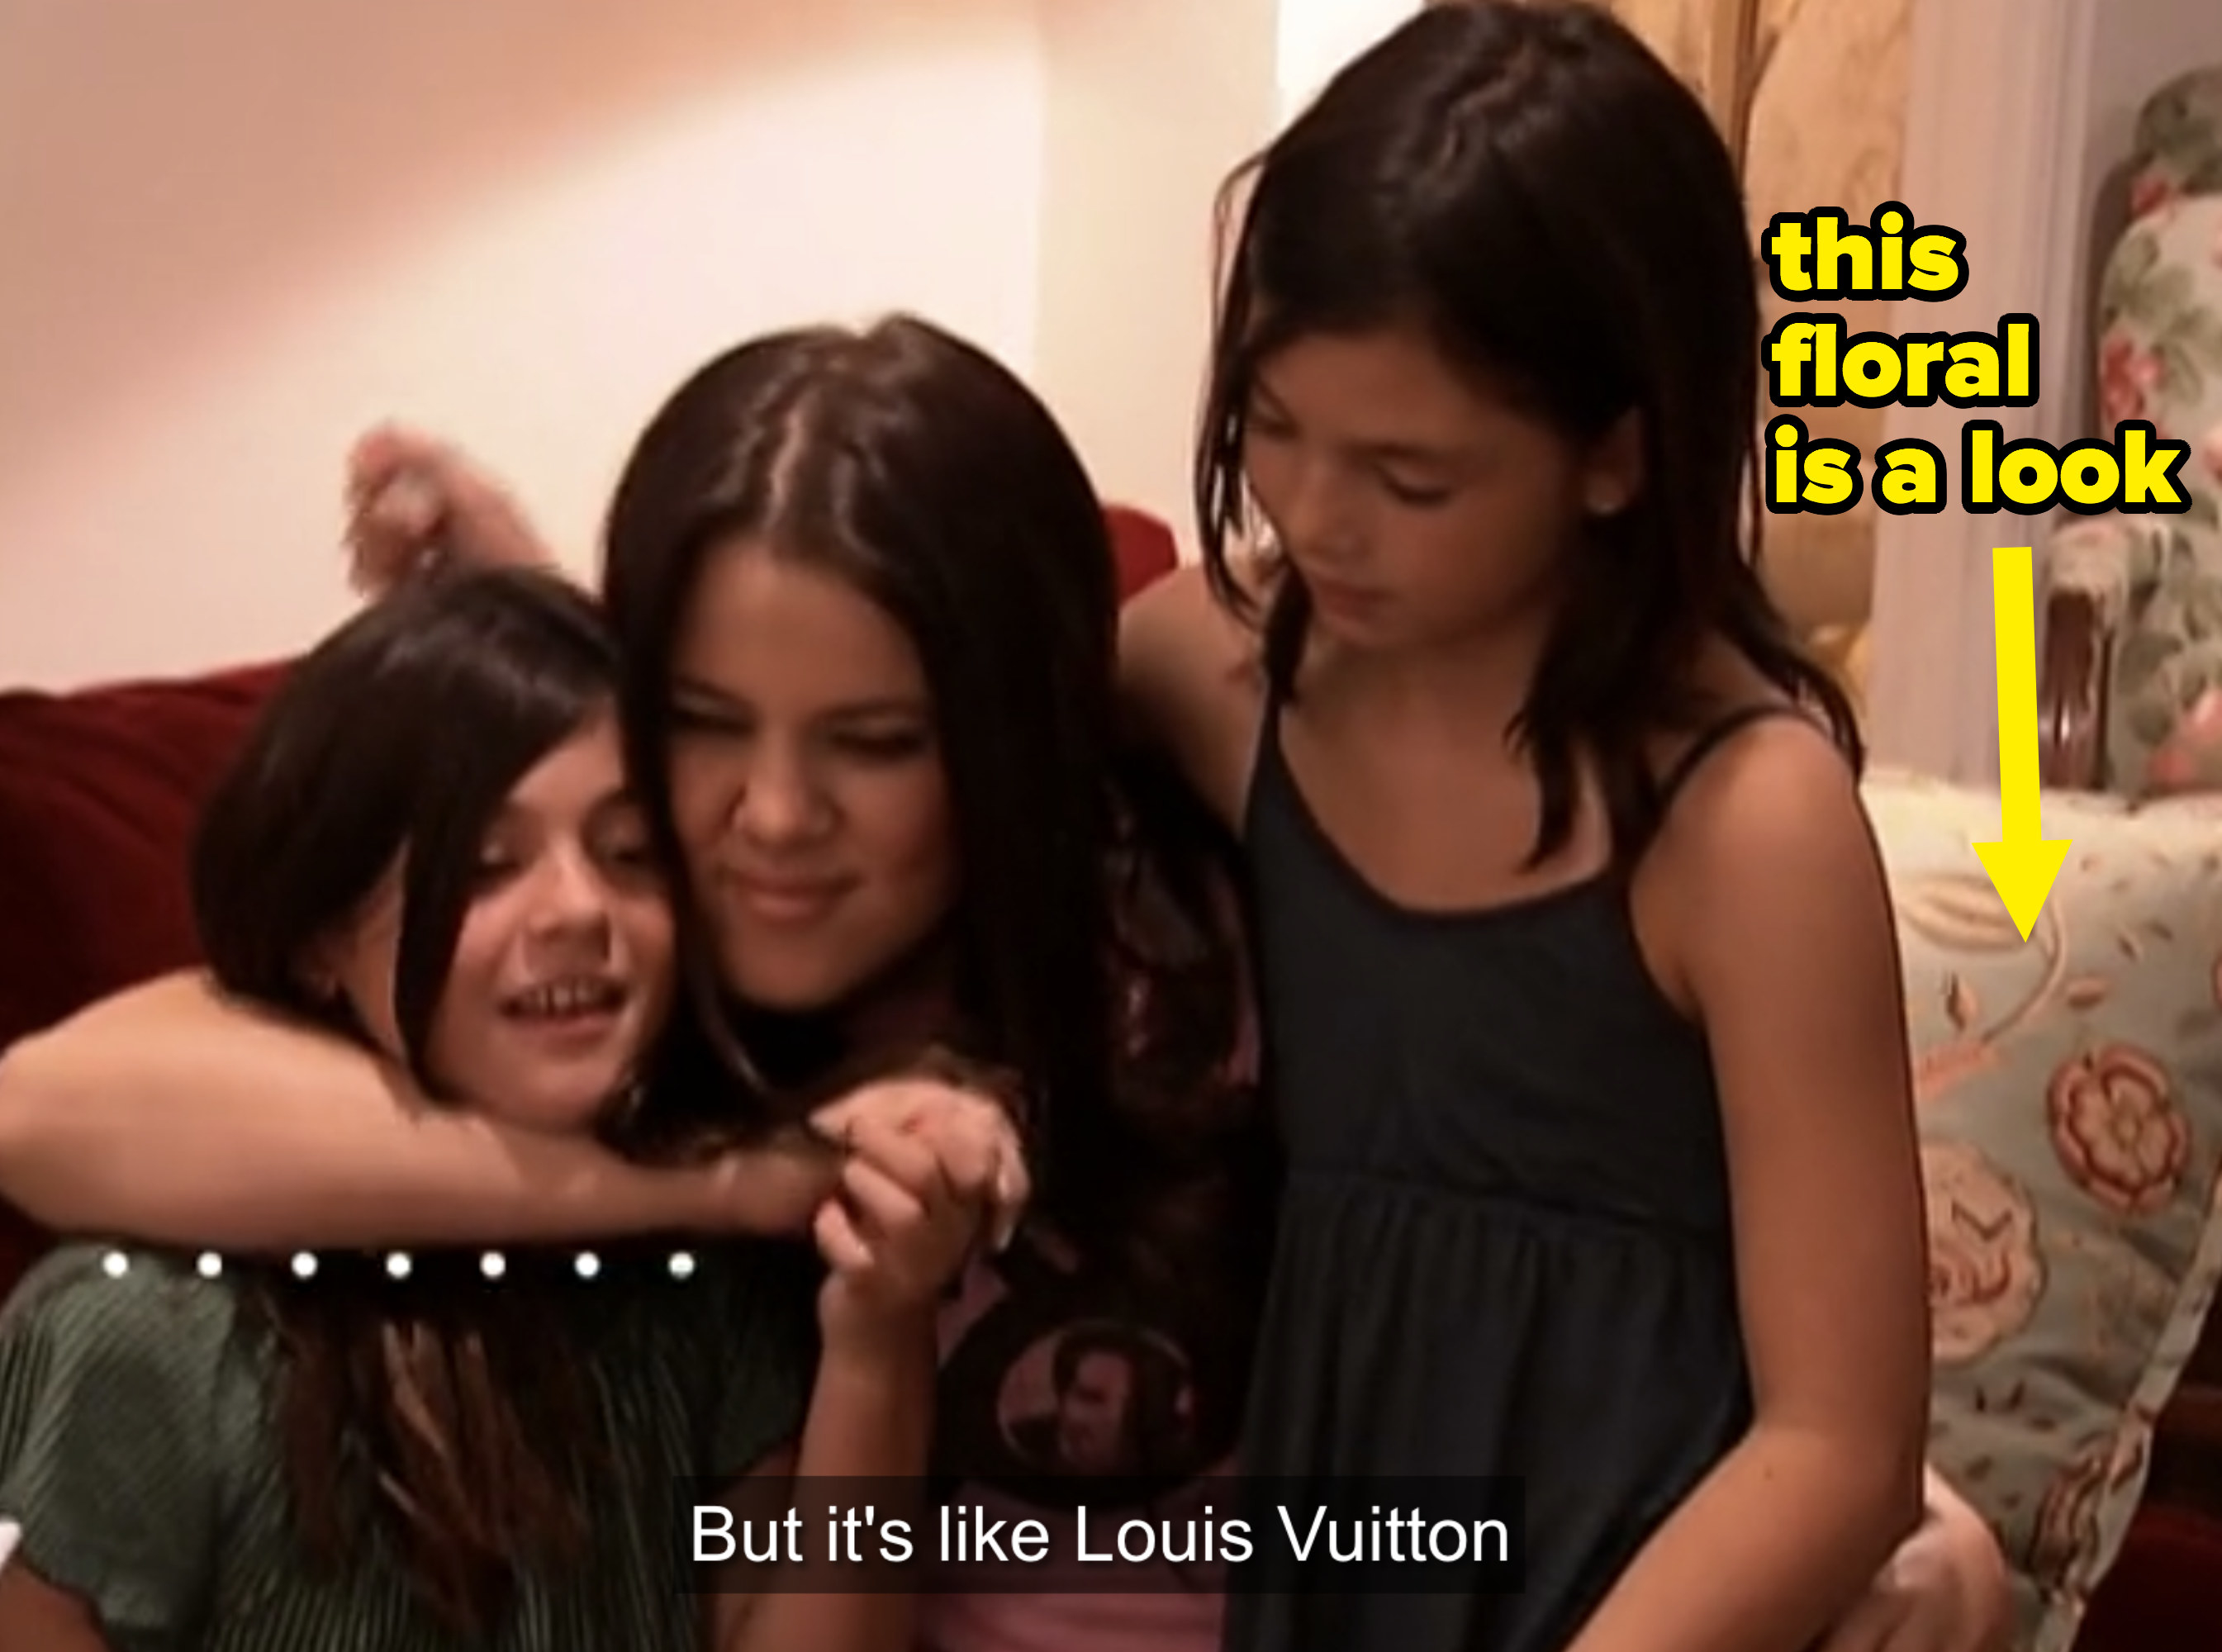 Khloe hugging young Kylie and Kendall